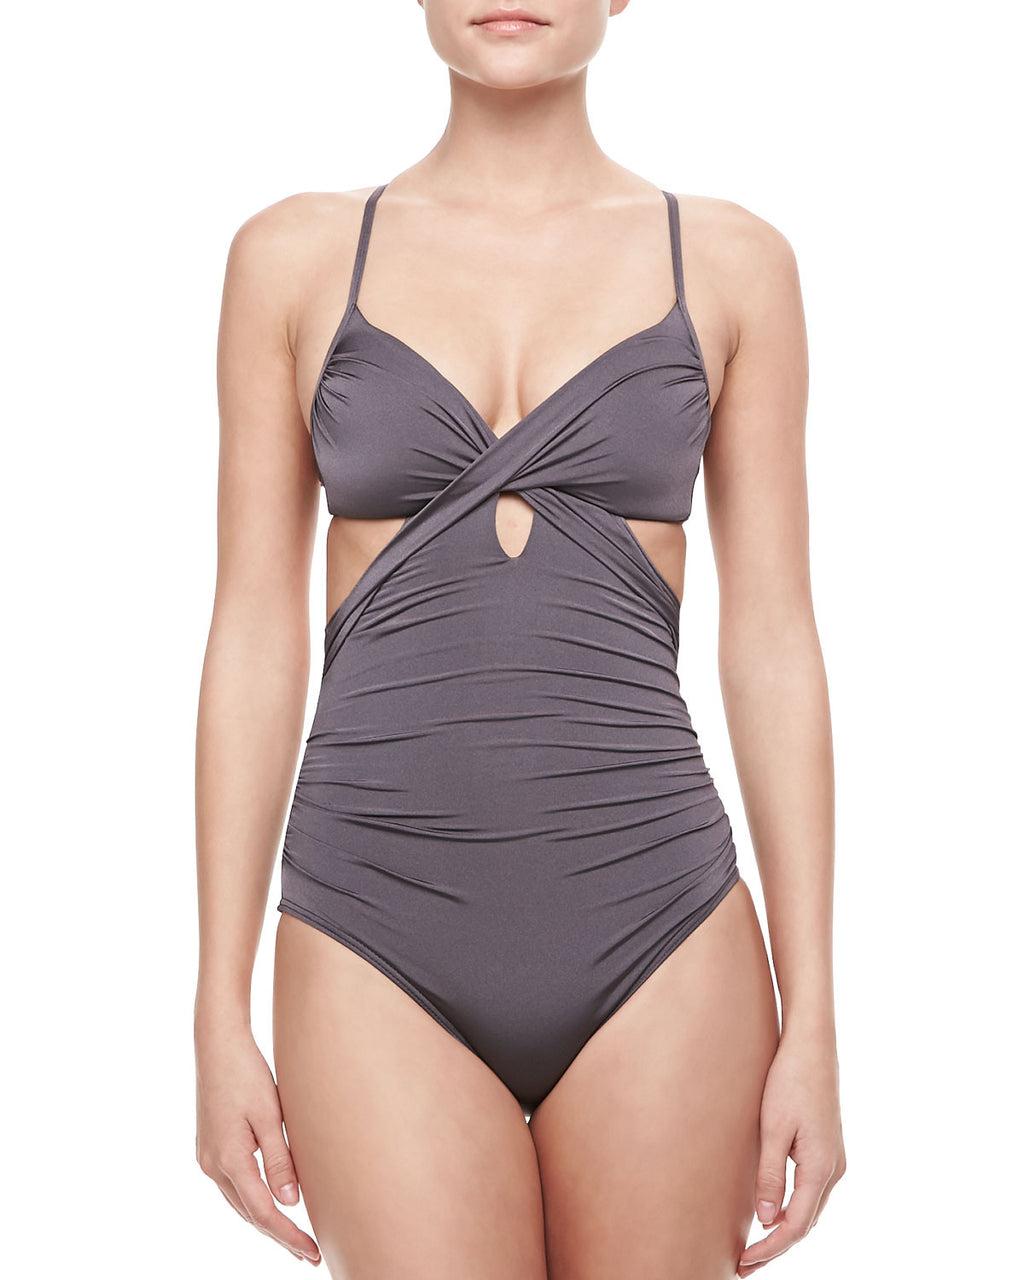 Jets Twist Underwire One Piece Quartz